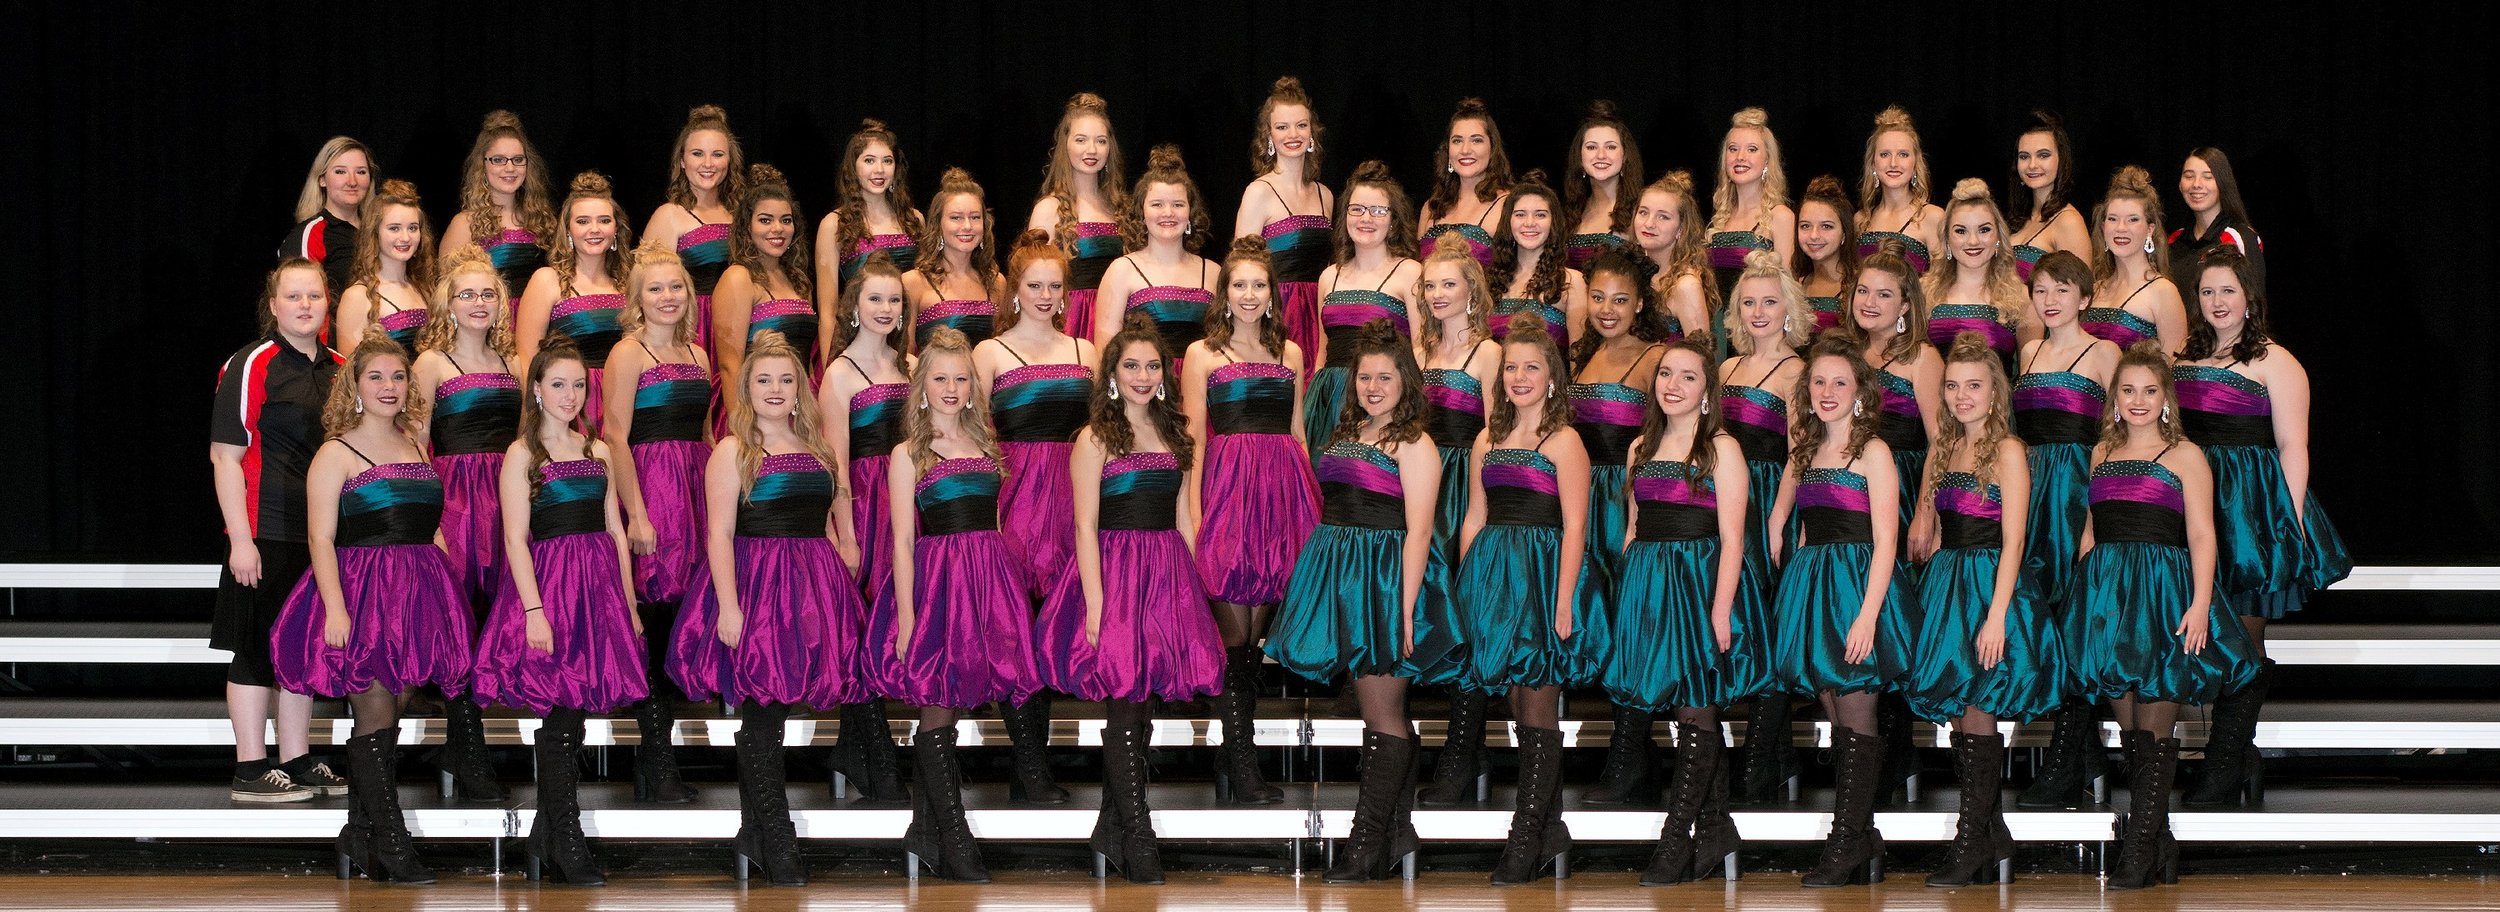 Sophisticated Ladies , the 44-member unisex choir from Edgewood High School, has been performing for 31 years! They too are choreographed by Jarad Voss and Tori Burns. These beautiful young women have traveled from coast to coast entertaining audiences, winning various caption awards, and capturing several Grand Champion trophies.